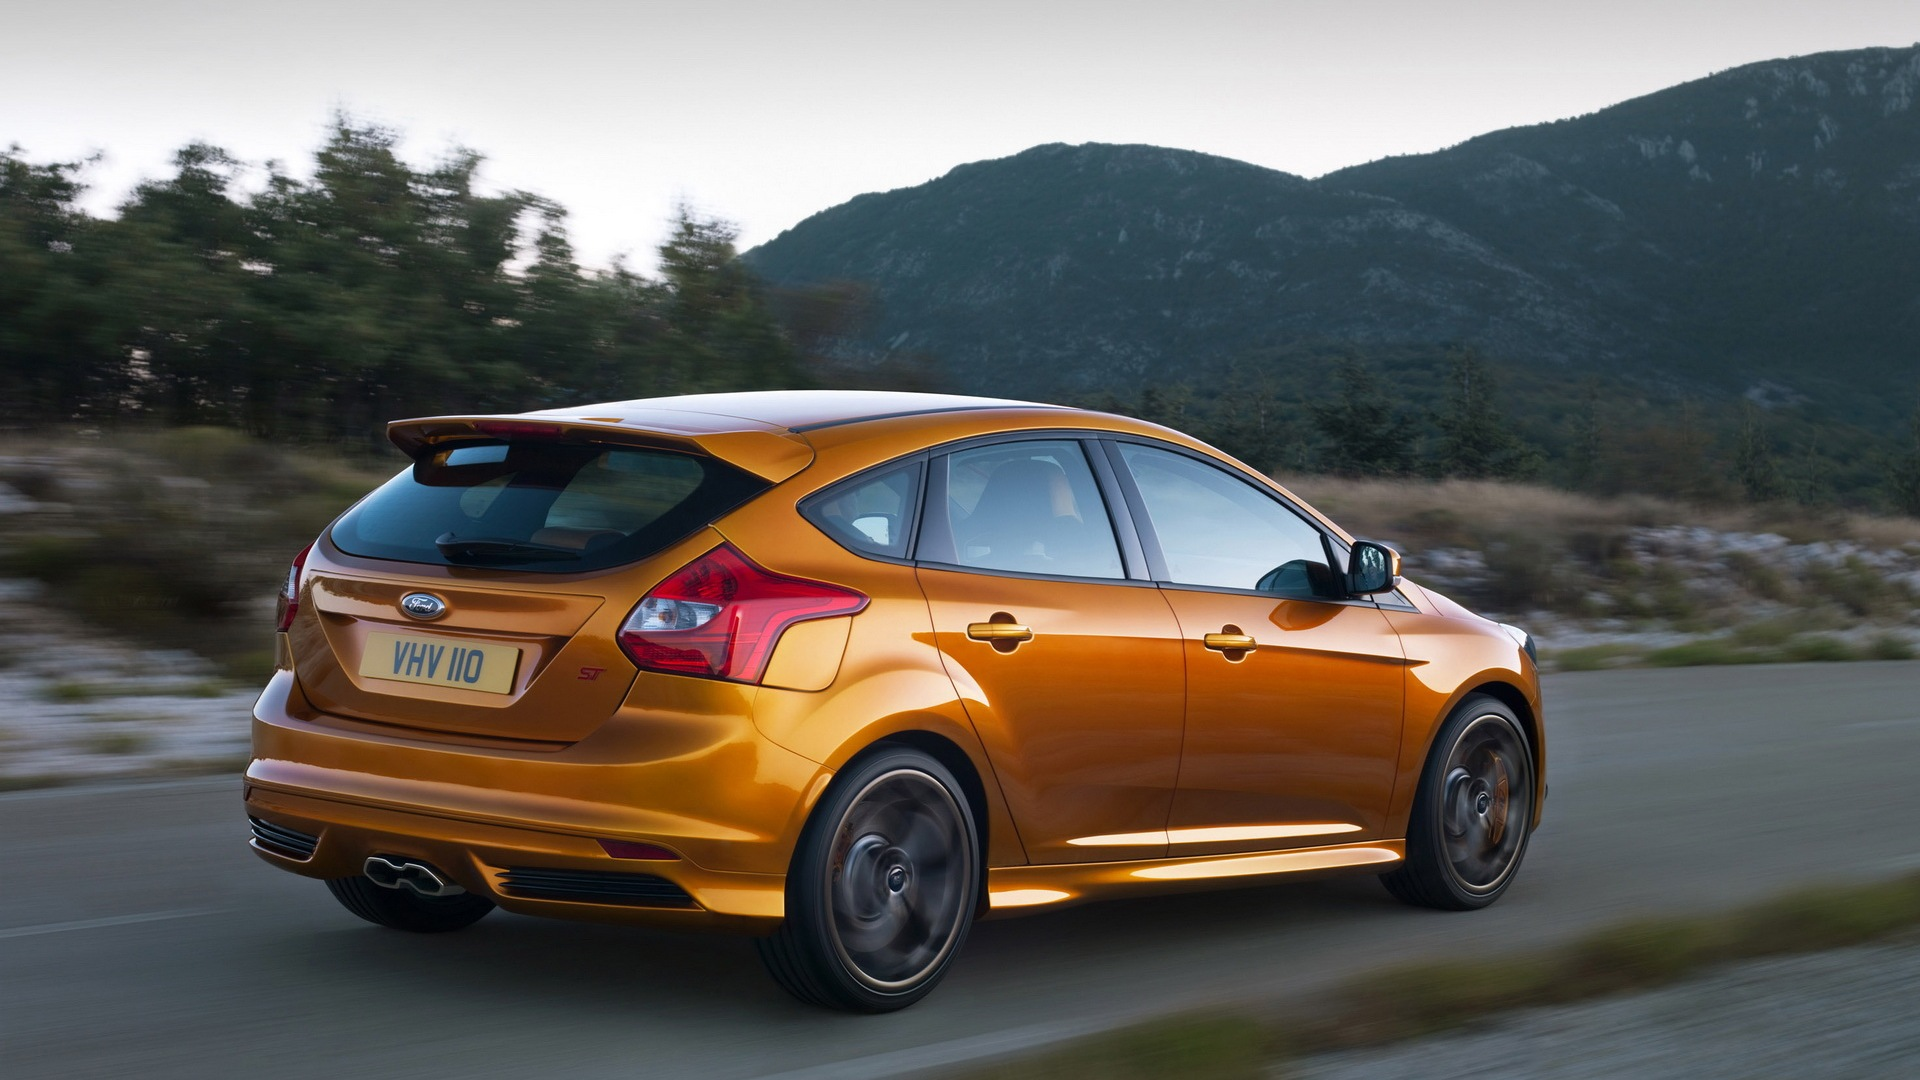 Ford Focus ST photos and wallpapers   tuningnewsnet 1920x1080